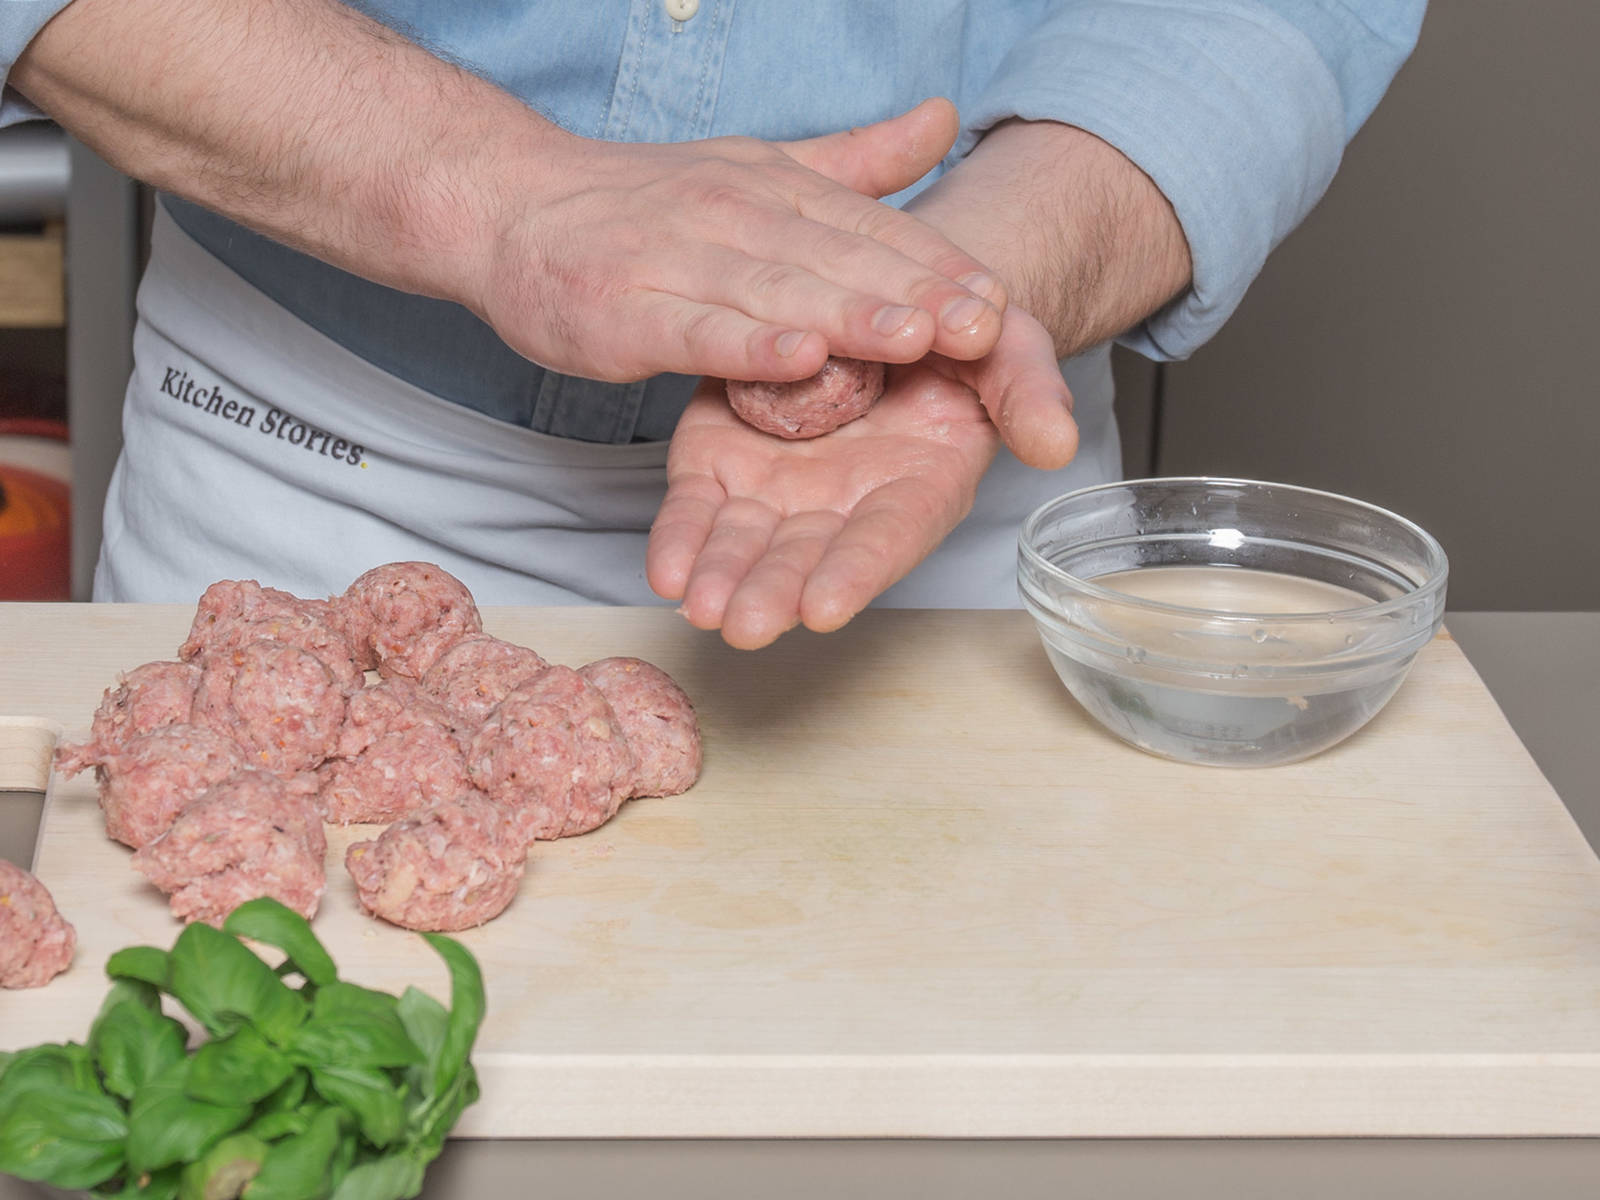 Transfer the ground pork and beef to a large mixing bowl and add sautéed garlic and shallots, chili flakes, oregano, breadcrumbs, and milk. Season with salt and pepper to taste. Stir well and form walnut-sized balls with wet hands. Transfer to refrigerator to rest.